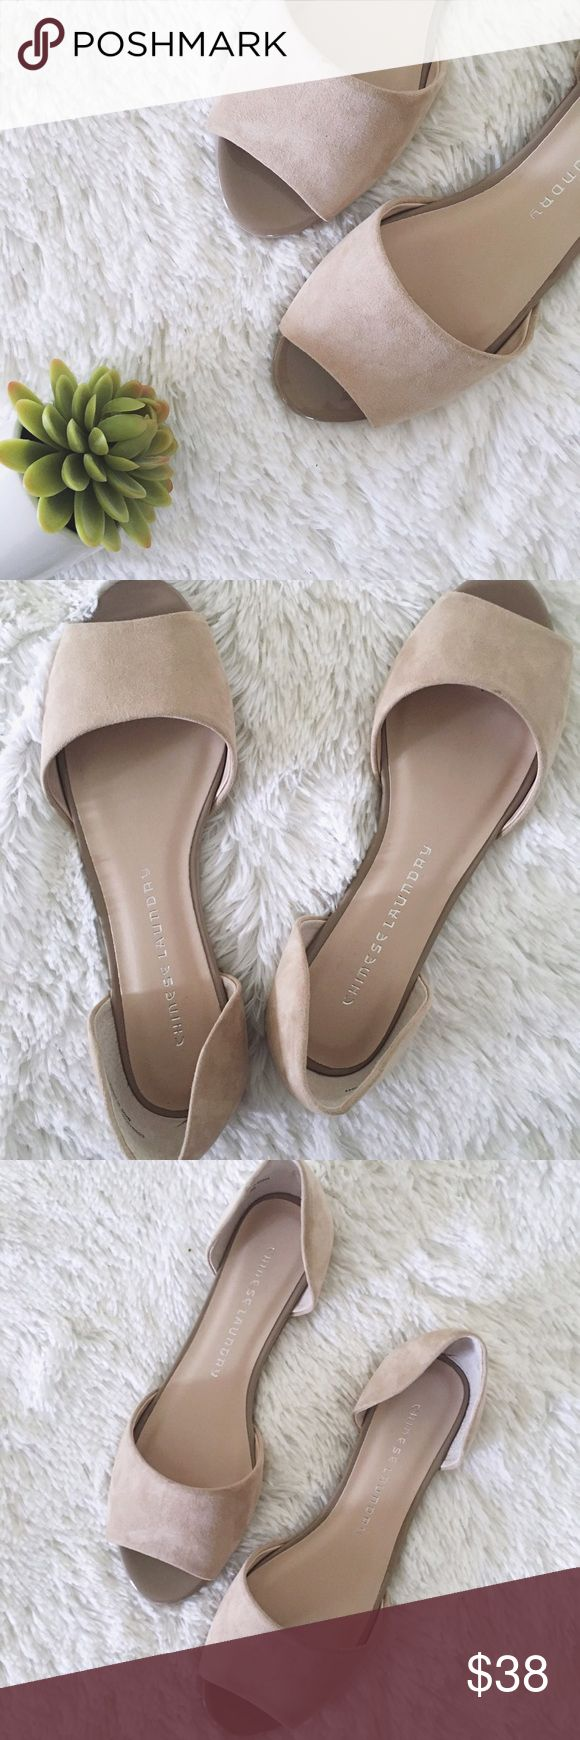 NWOBChinese Laundry • faux suede open toe flats •Chinese laundry •NWOB  •tan faux suede •open toe •super versatile •Size: 7 M  •Please see all pics, read description, and ask questions before purchasing   •No Trades• Chinese Laundry Shoes Flats & Loafers